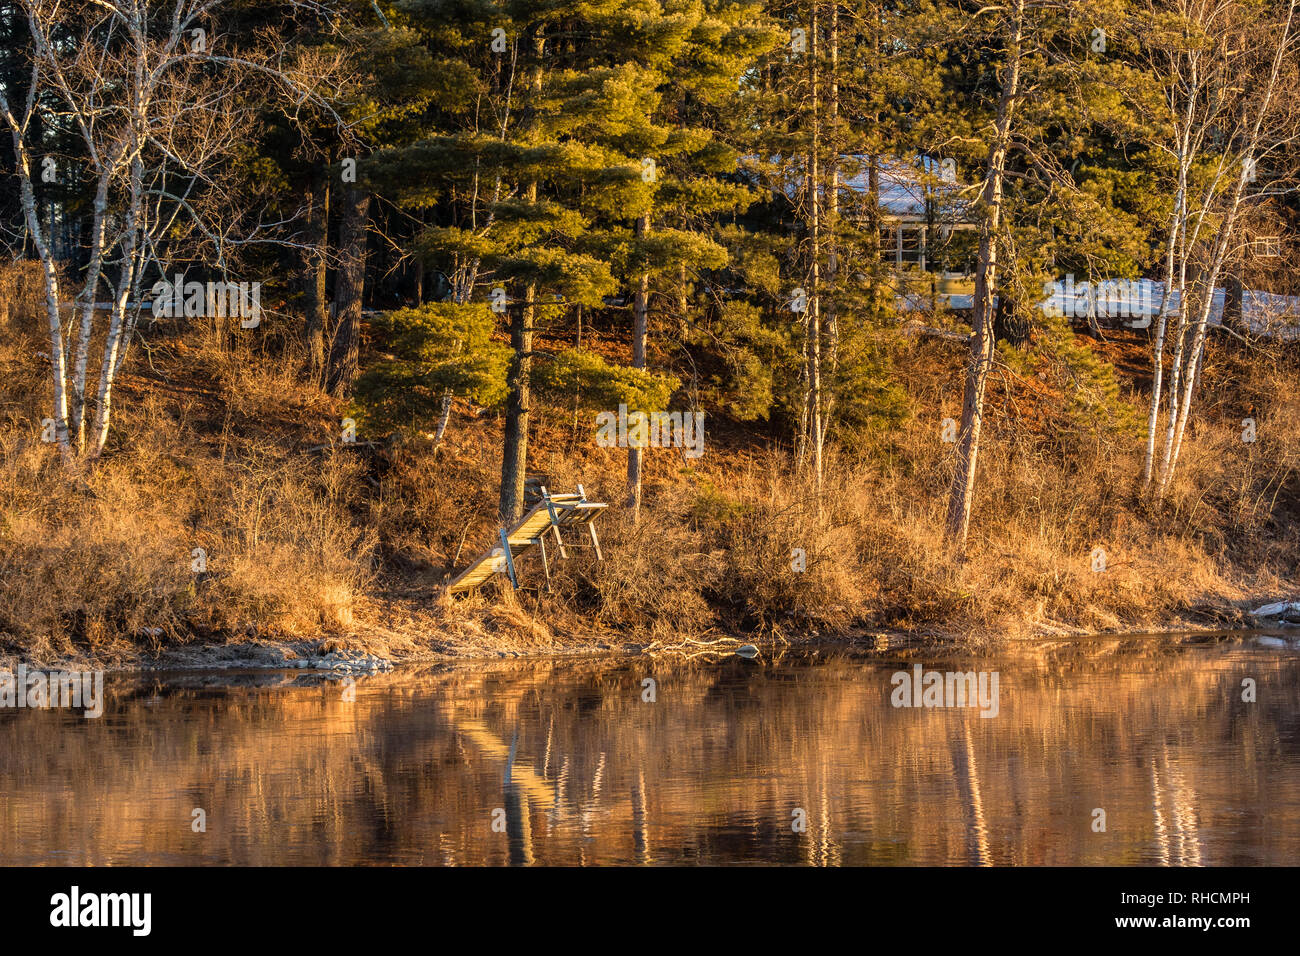 Early morning sunrise on the Chippewa river in northern Wisconsin.  A seasonal resort is the background with some snow still remaining on the ground w - Stock Image